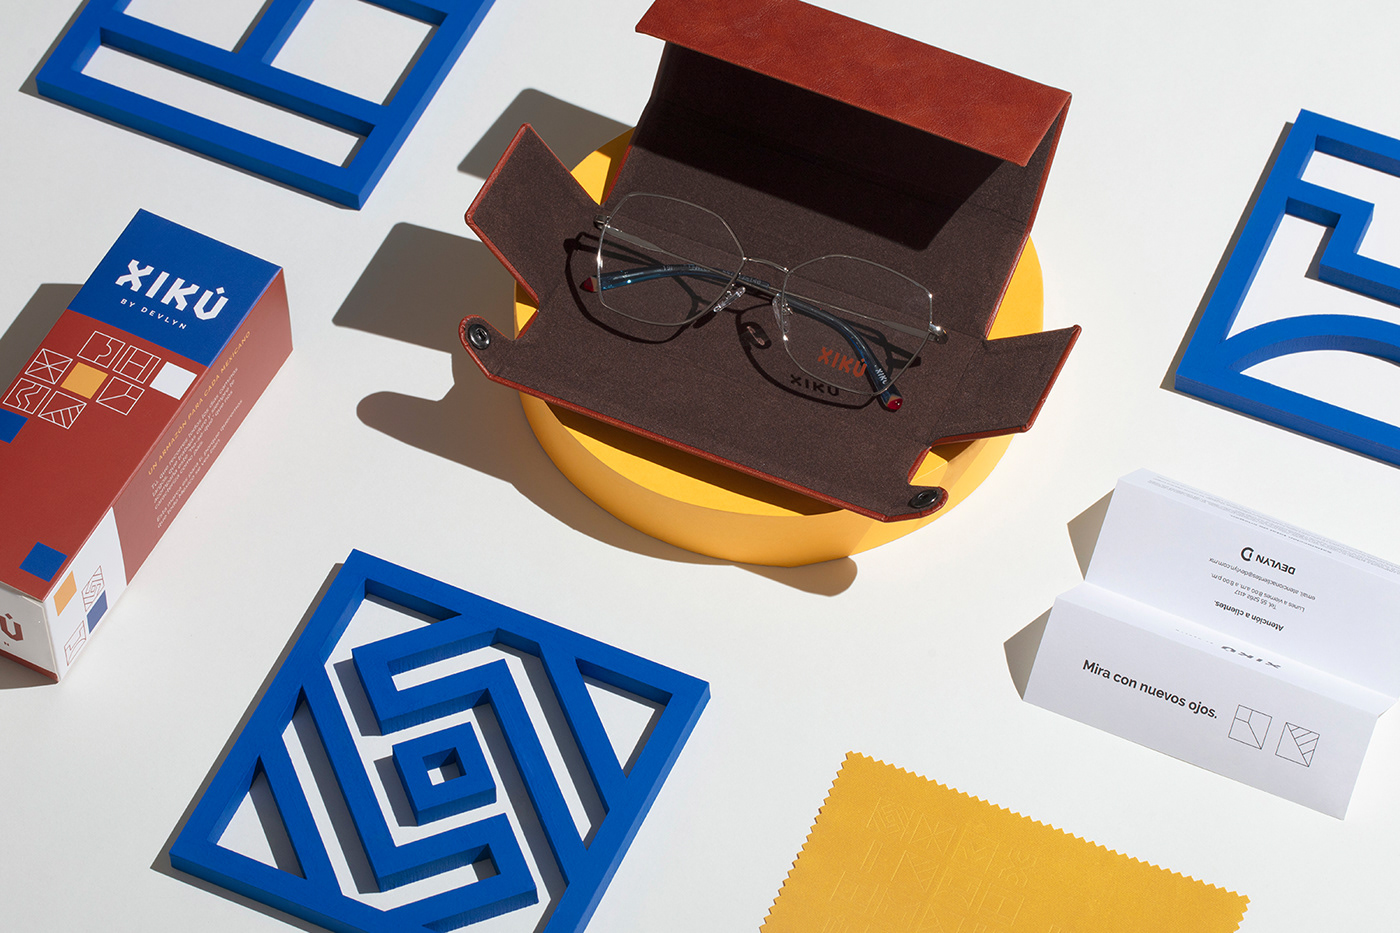 brand, culture digital eyewear glasses icons Mexican optical packaging, Shades